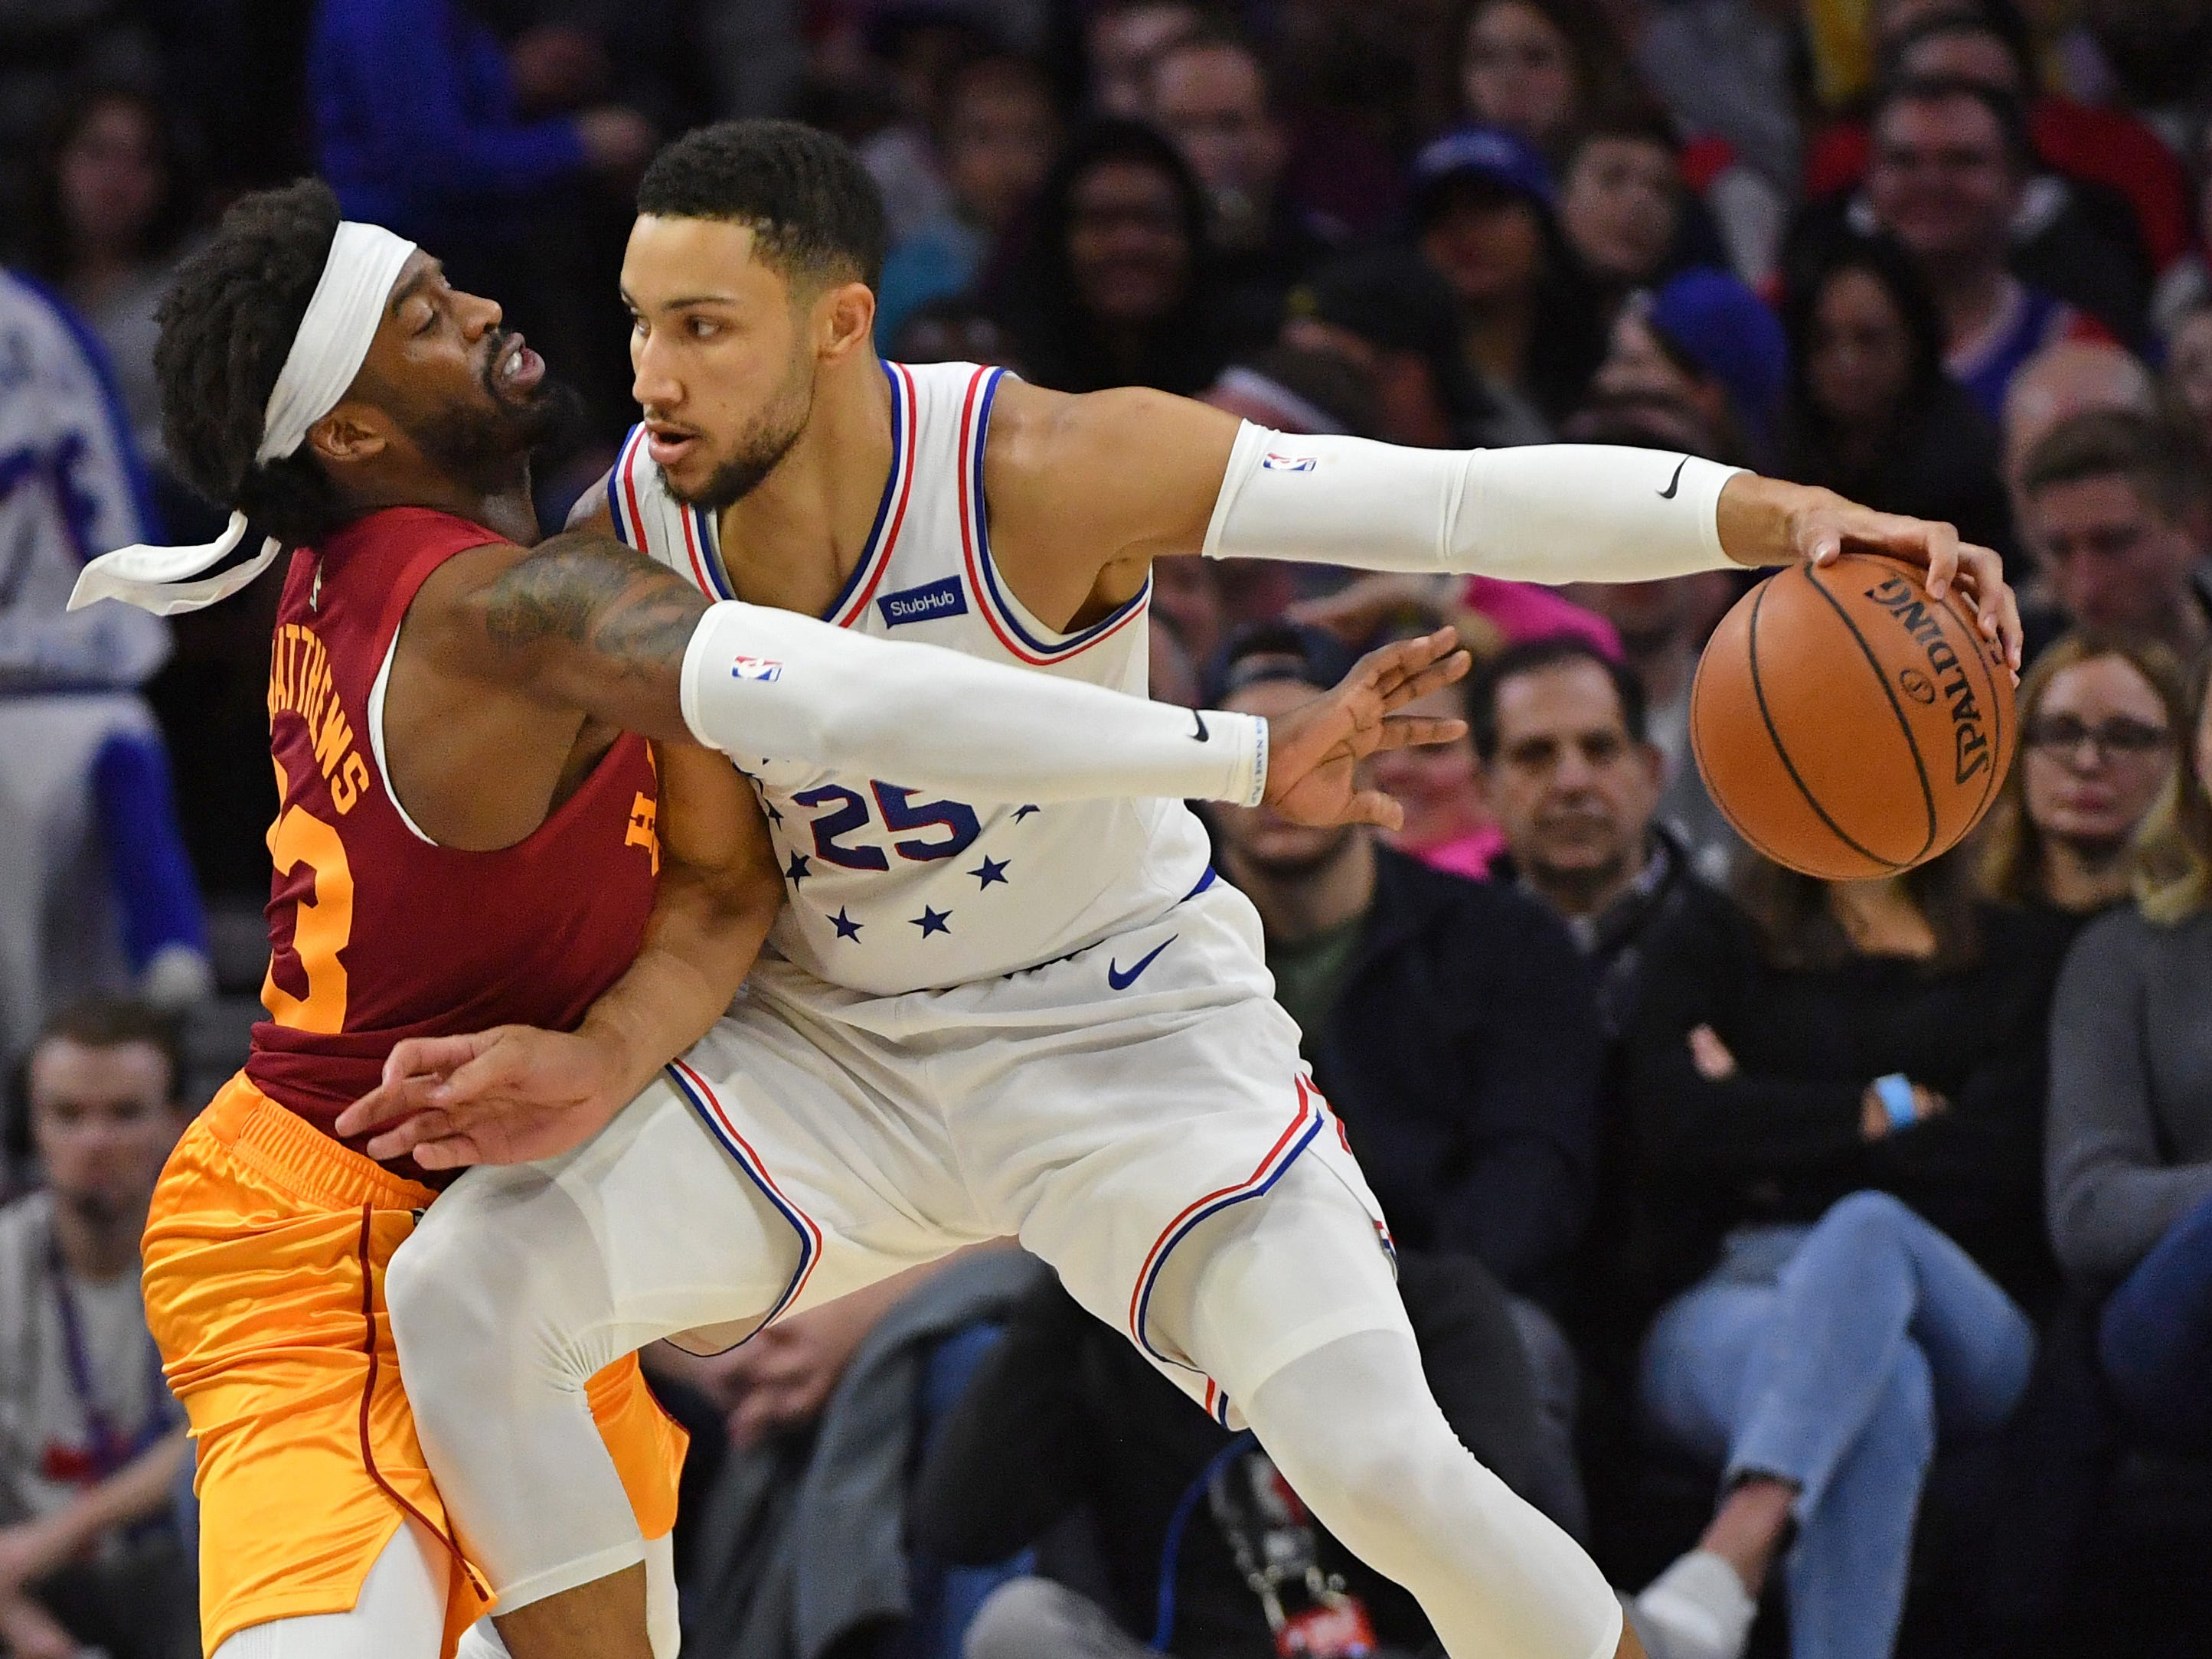 Mar 10, 2019; Philadelphia, PA, USA; Philadelphia 76ers guard Ben Simmons (25) is pressured by Indiana Pacers guard Wesley Matthews (23) during the second quarter at Wells Fargo Center.